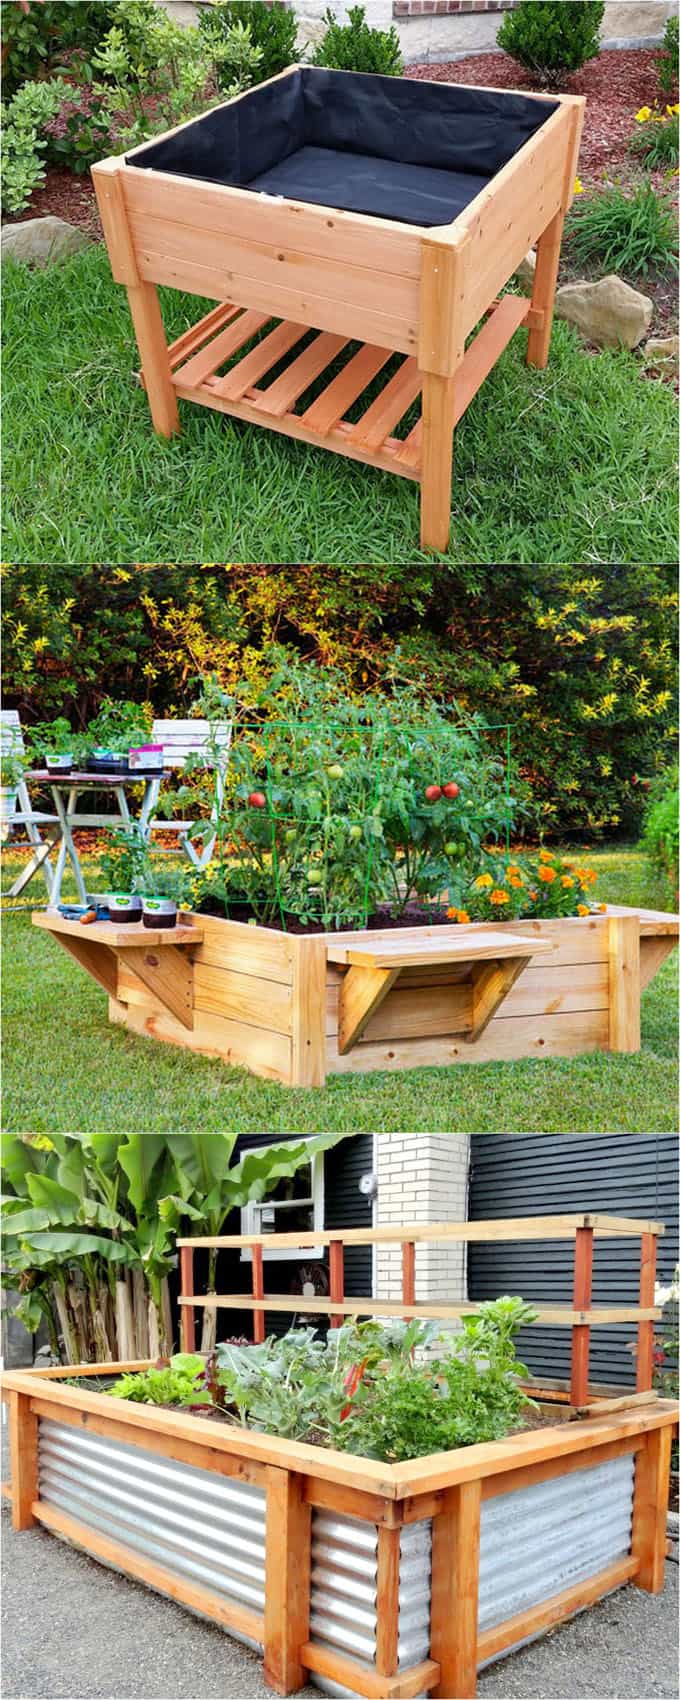 28 Amazing DIY Raised Bed Gardens - A Piece Of Rainbow